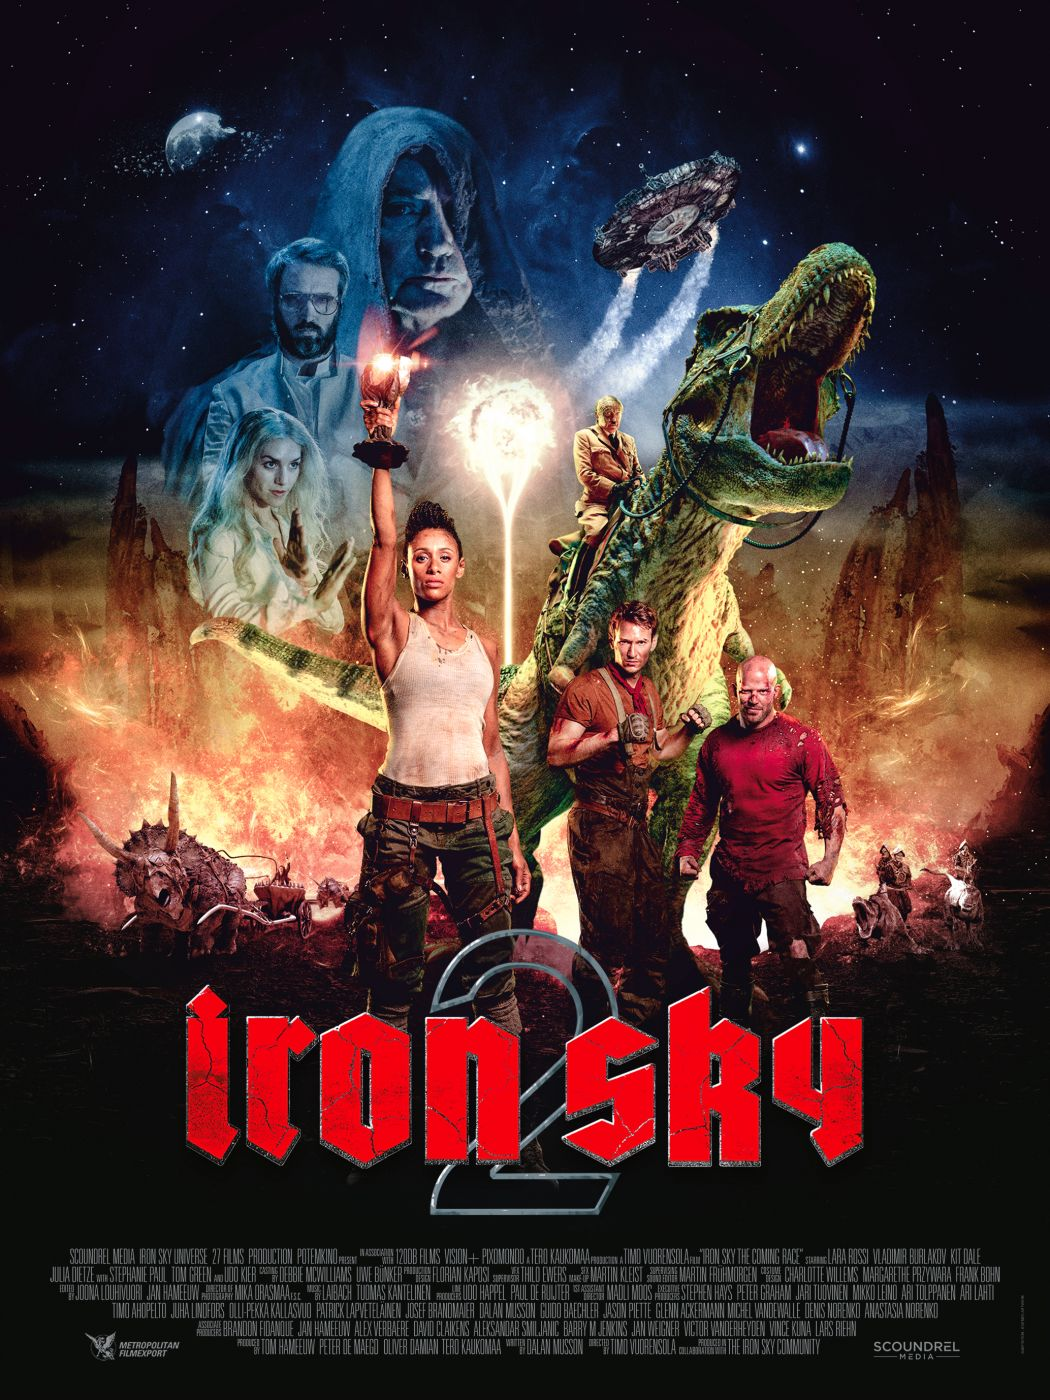 IRON-SKY-2-THE-COMING-RACE_Poster_BIFFF2